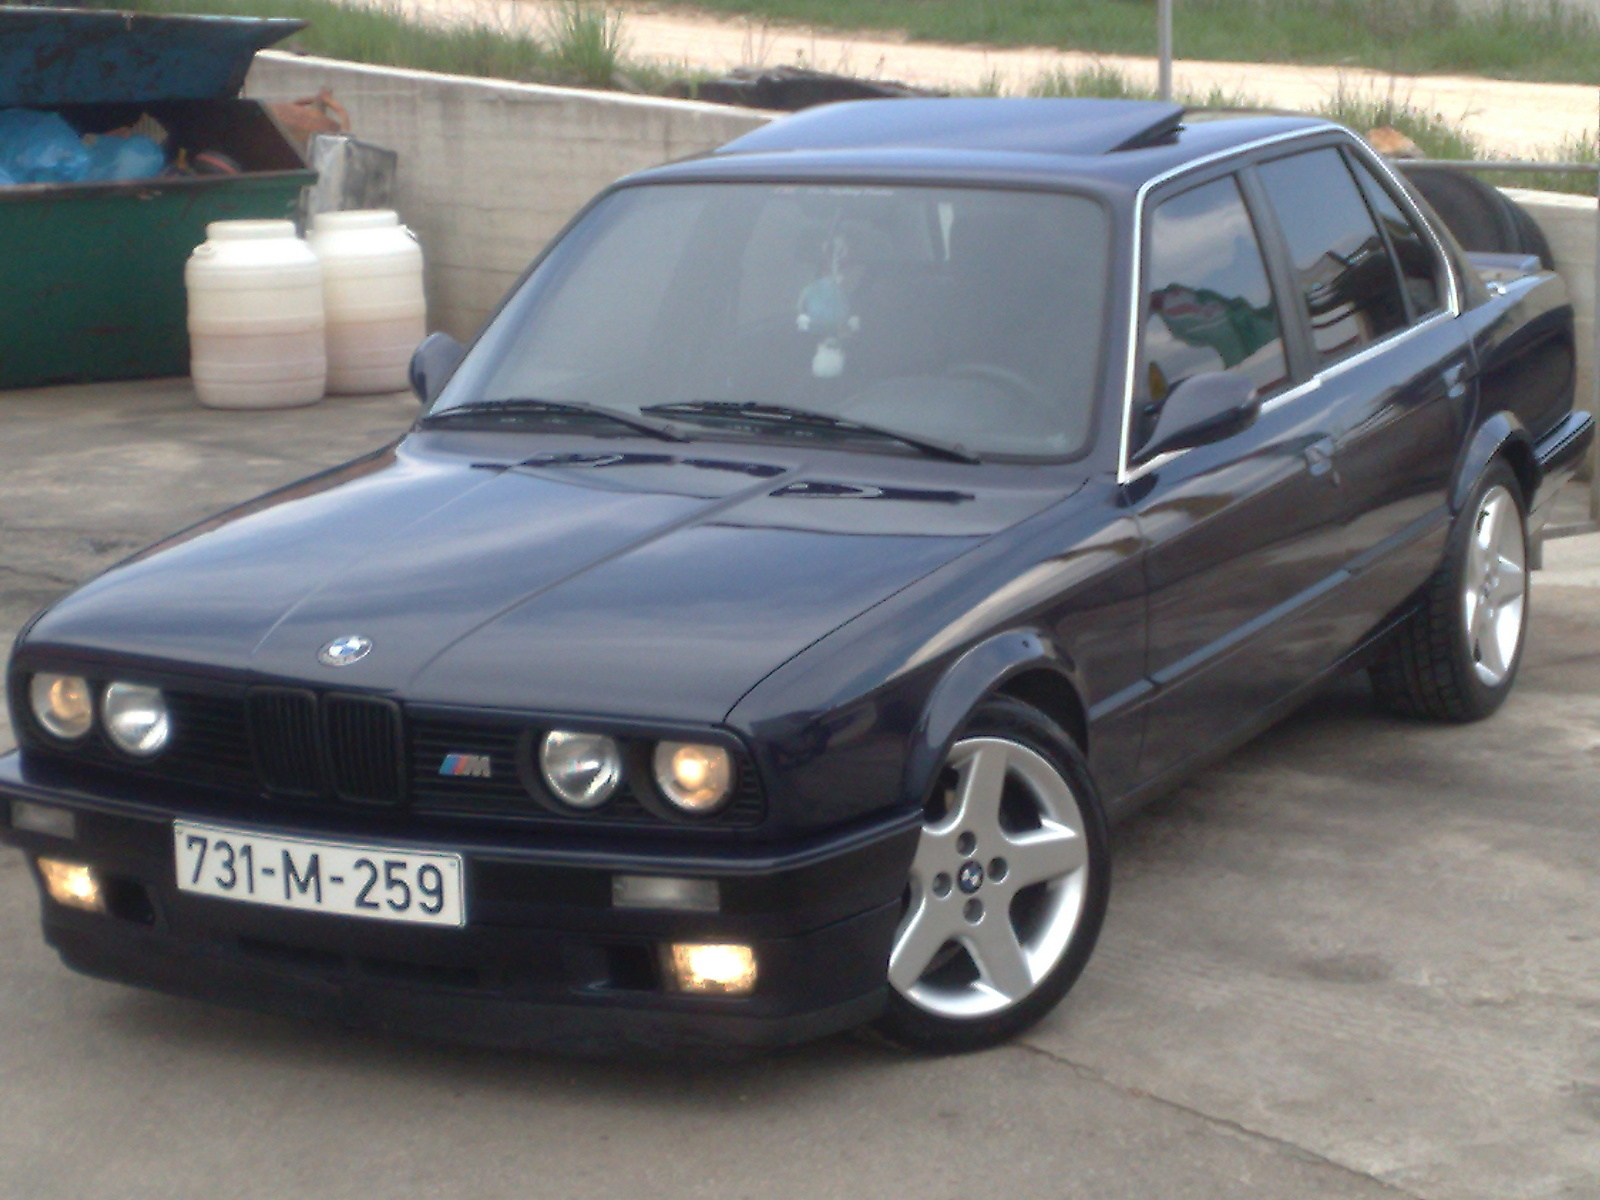 bmw 323i 1990: review, amazing pictures and images – look at the car